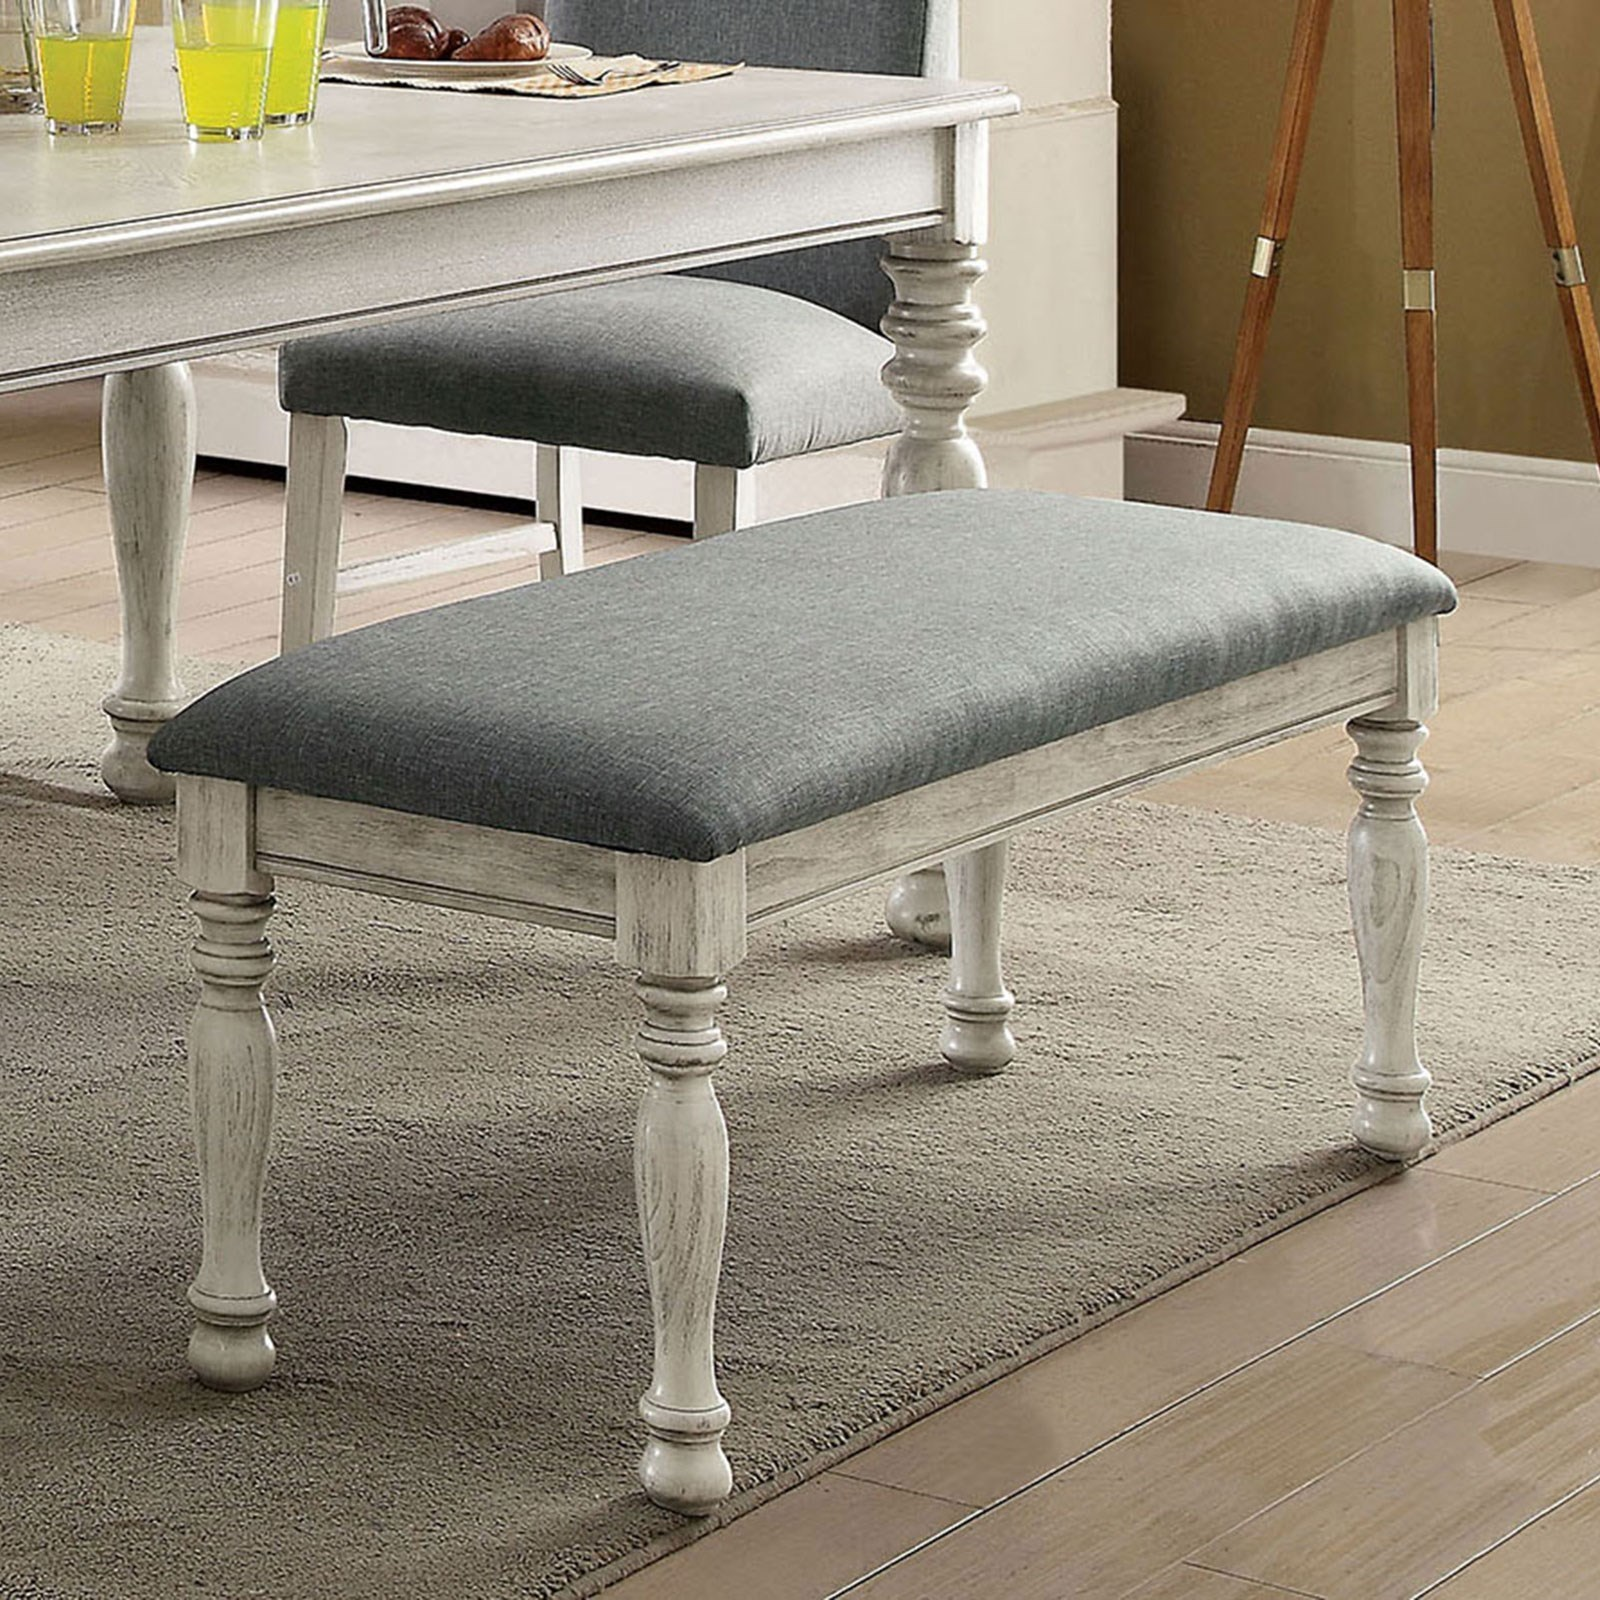 Siobhan II Bench at Household Furniture